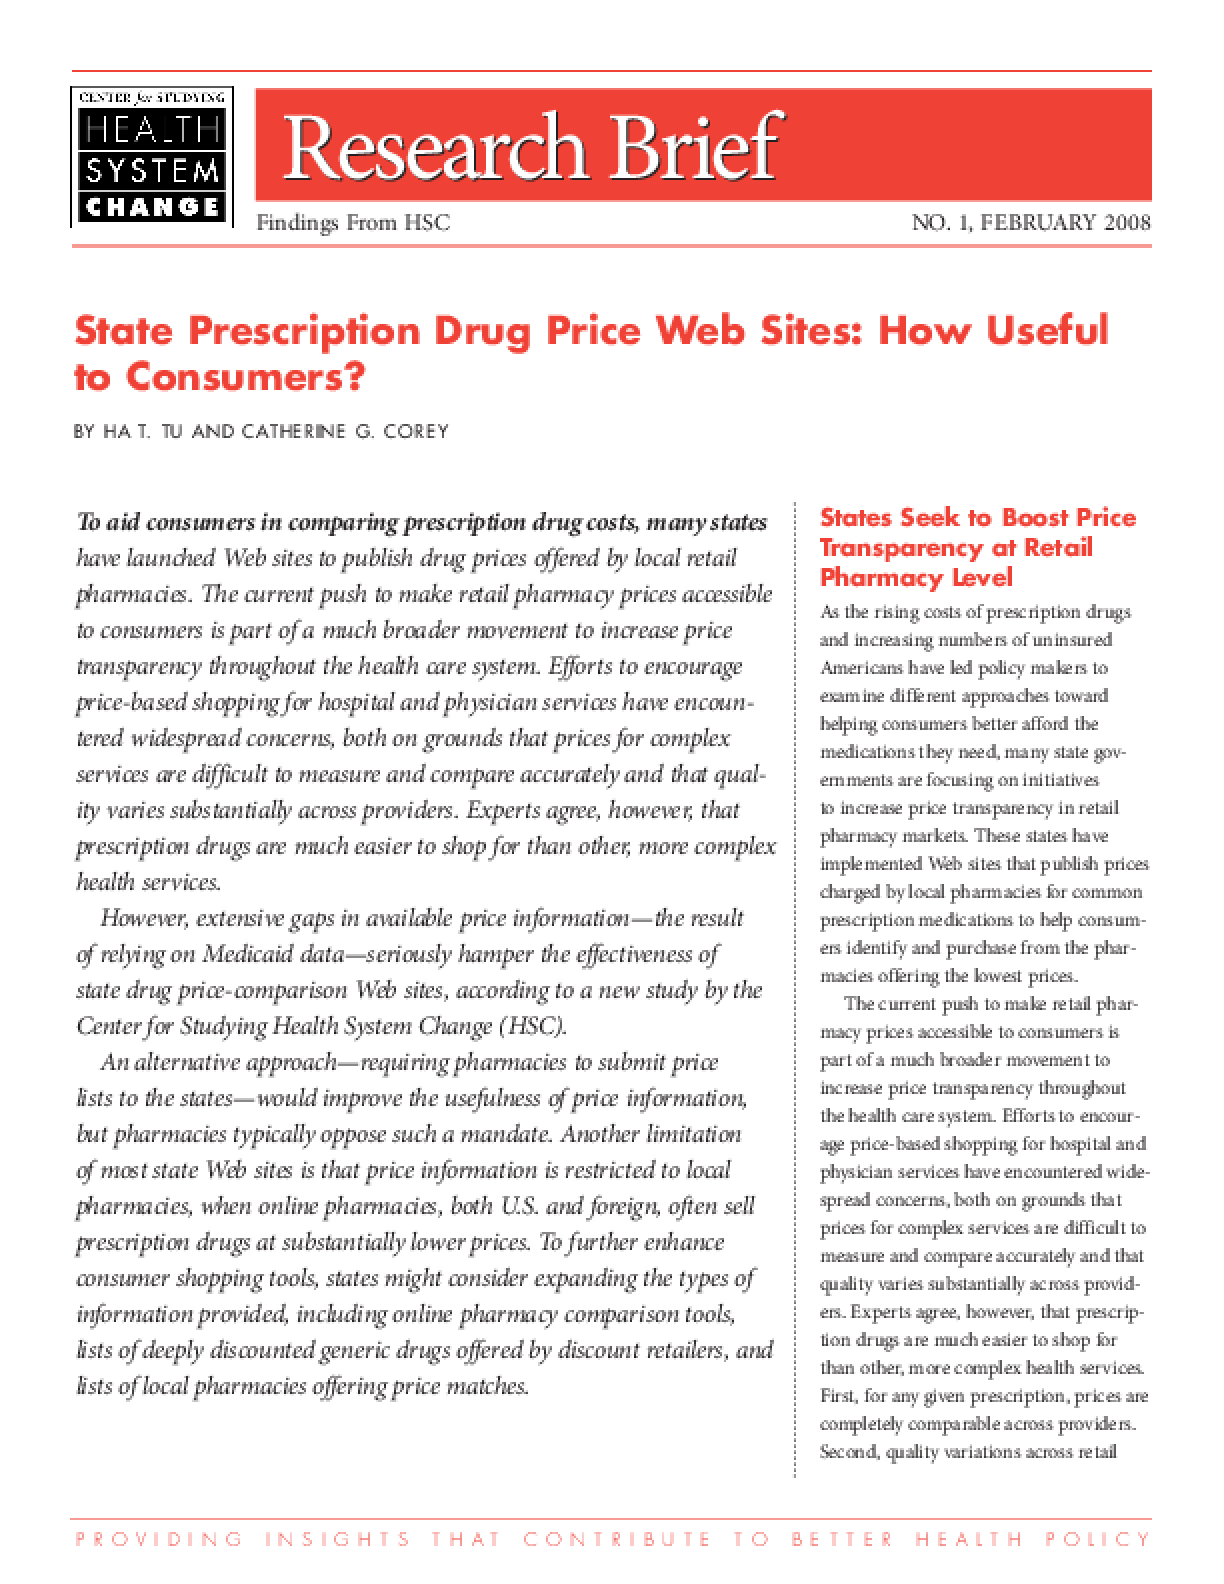 State Prescription Drug Price Web Sites: How Useful to Consumers?